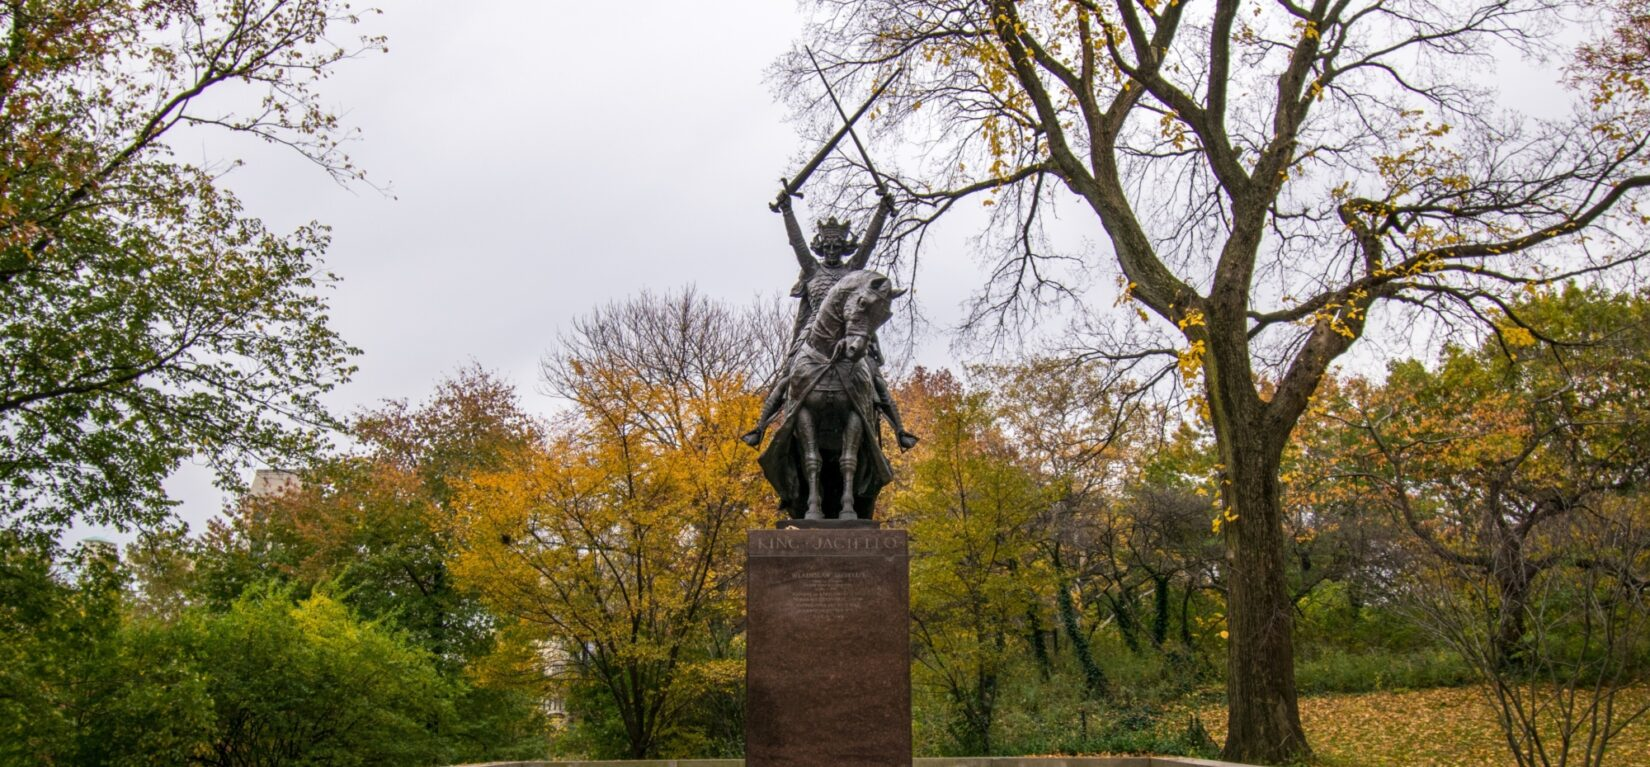 The King is seen astride his horse and holding two swords in his upraised hands